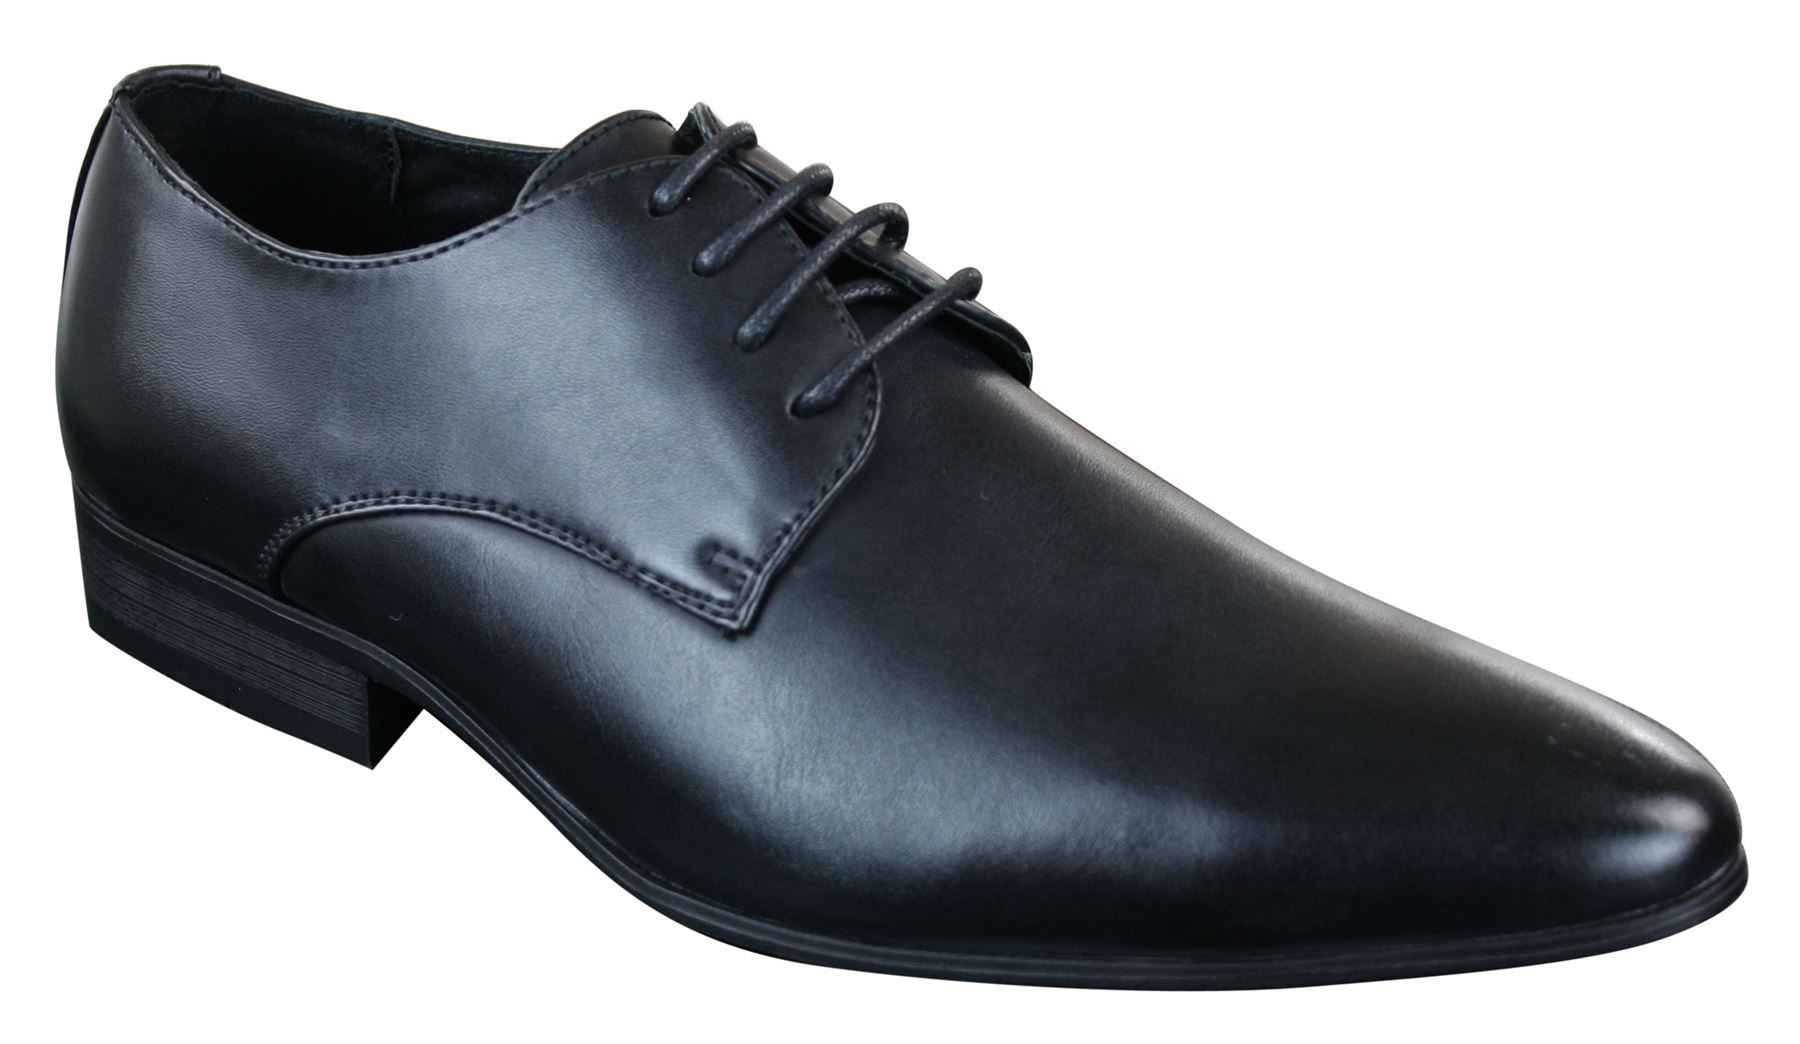 galax chaussures homme chic decontracte